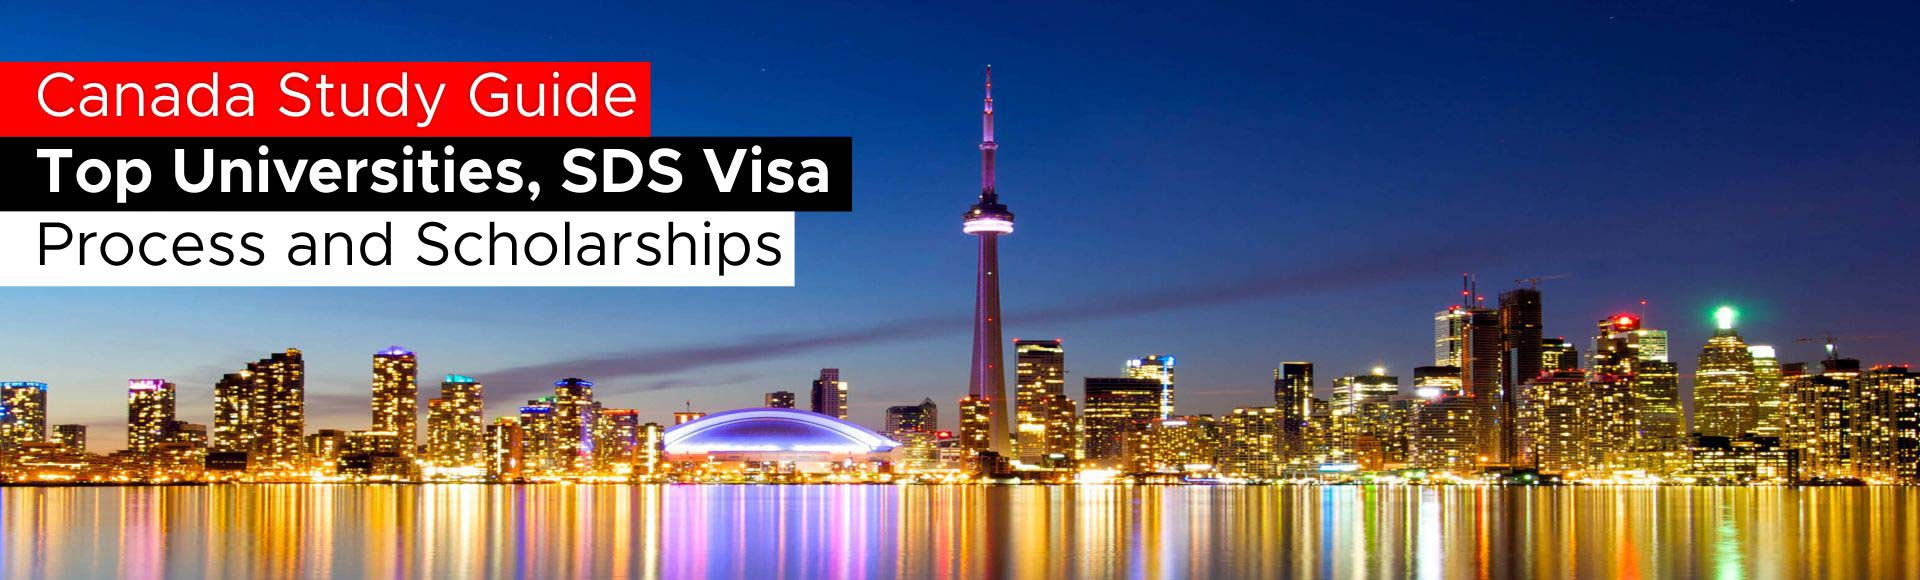 Canada Study Guide: Top Universities, SDS Visa Process and Scholarships